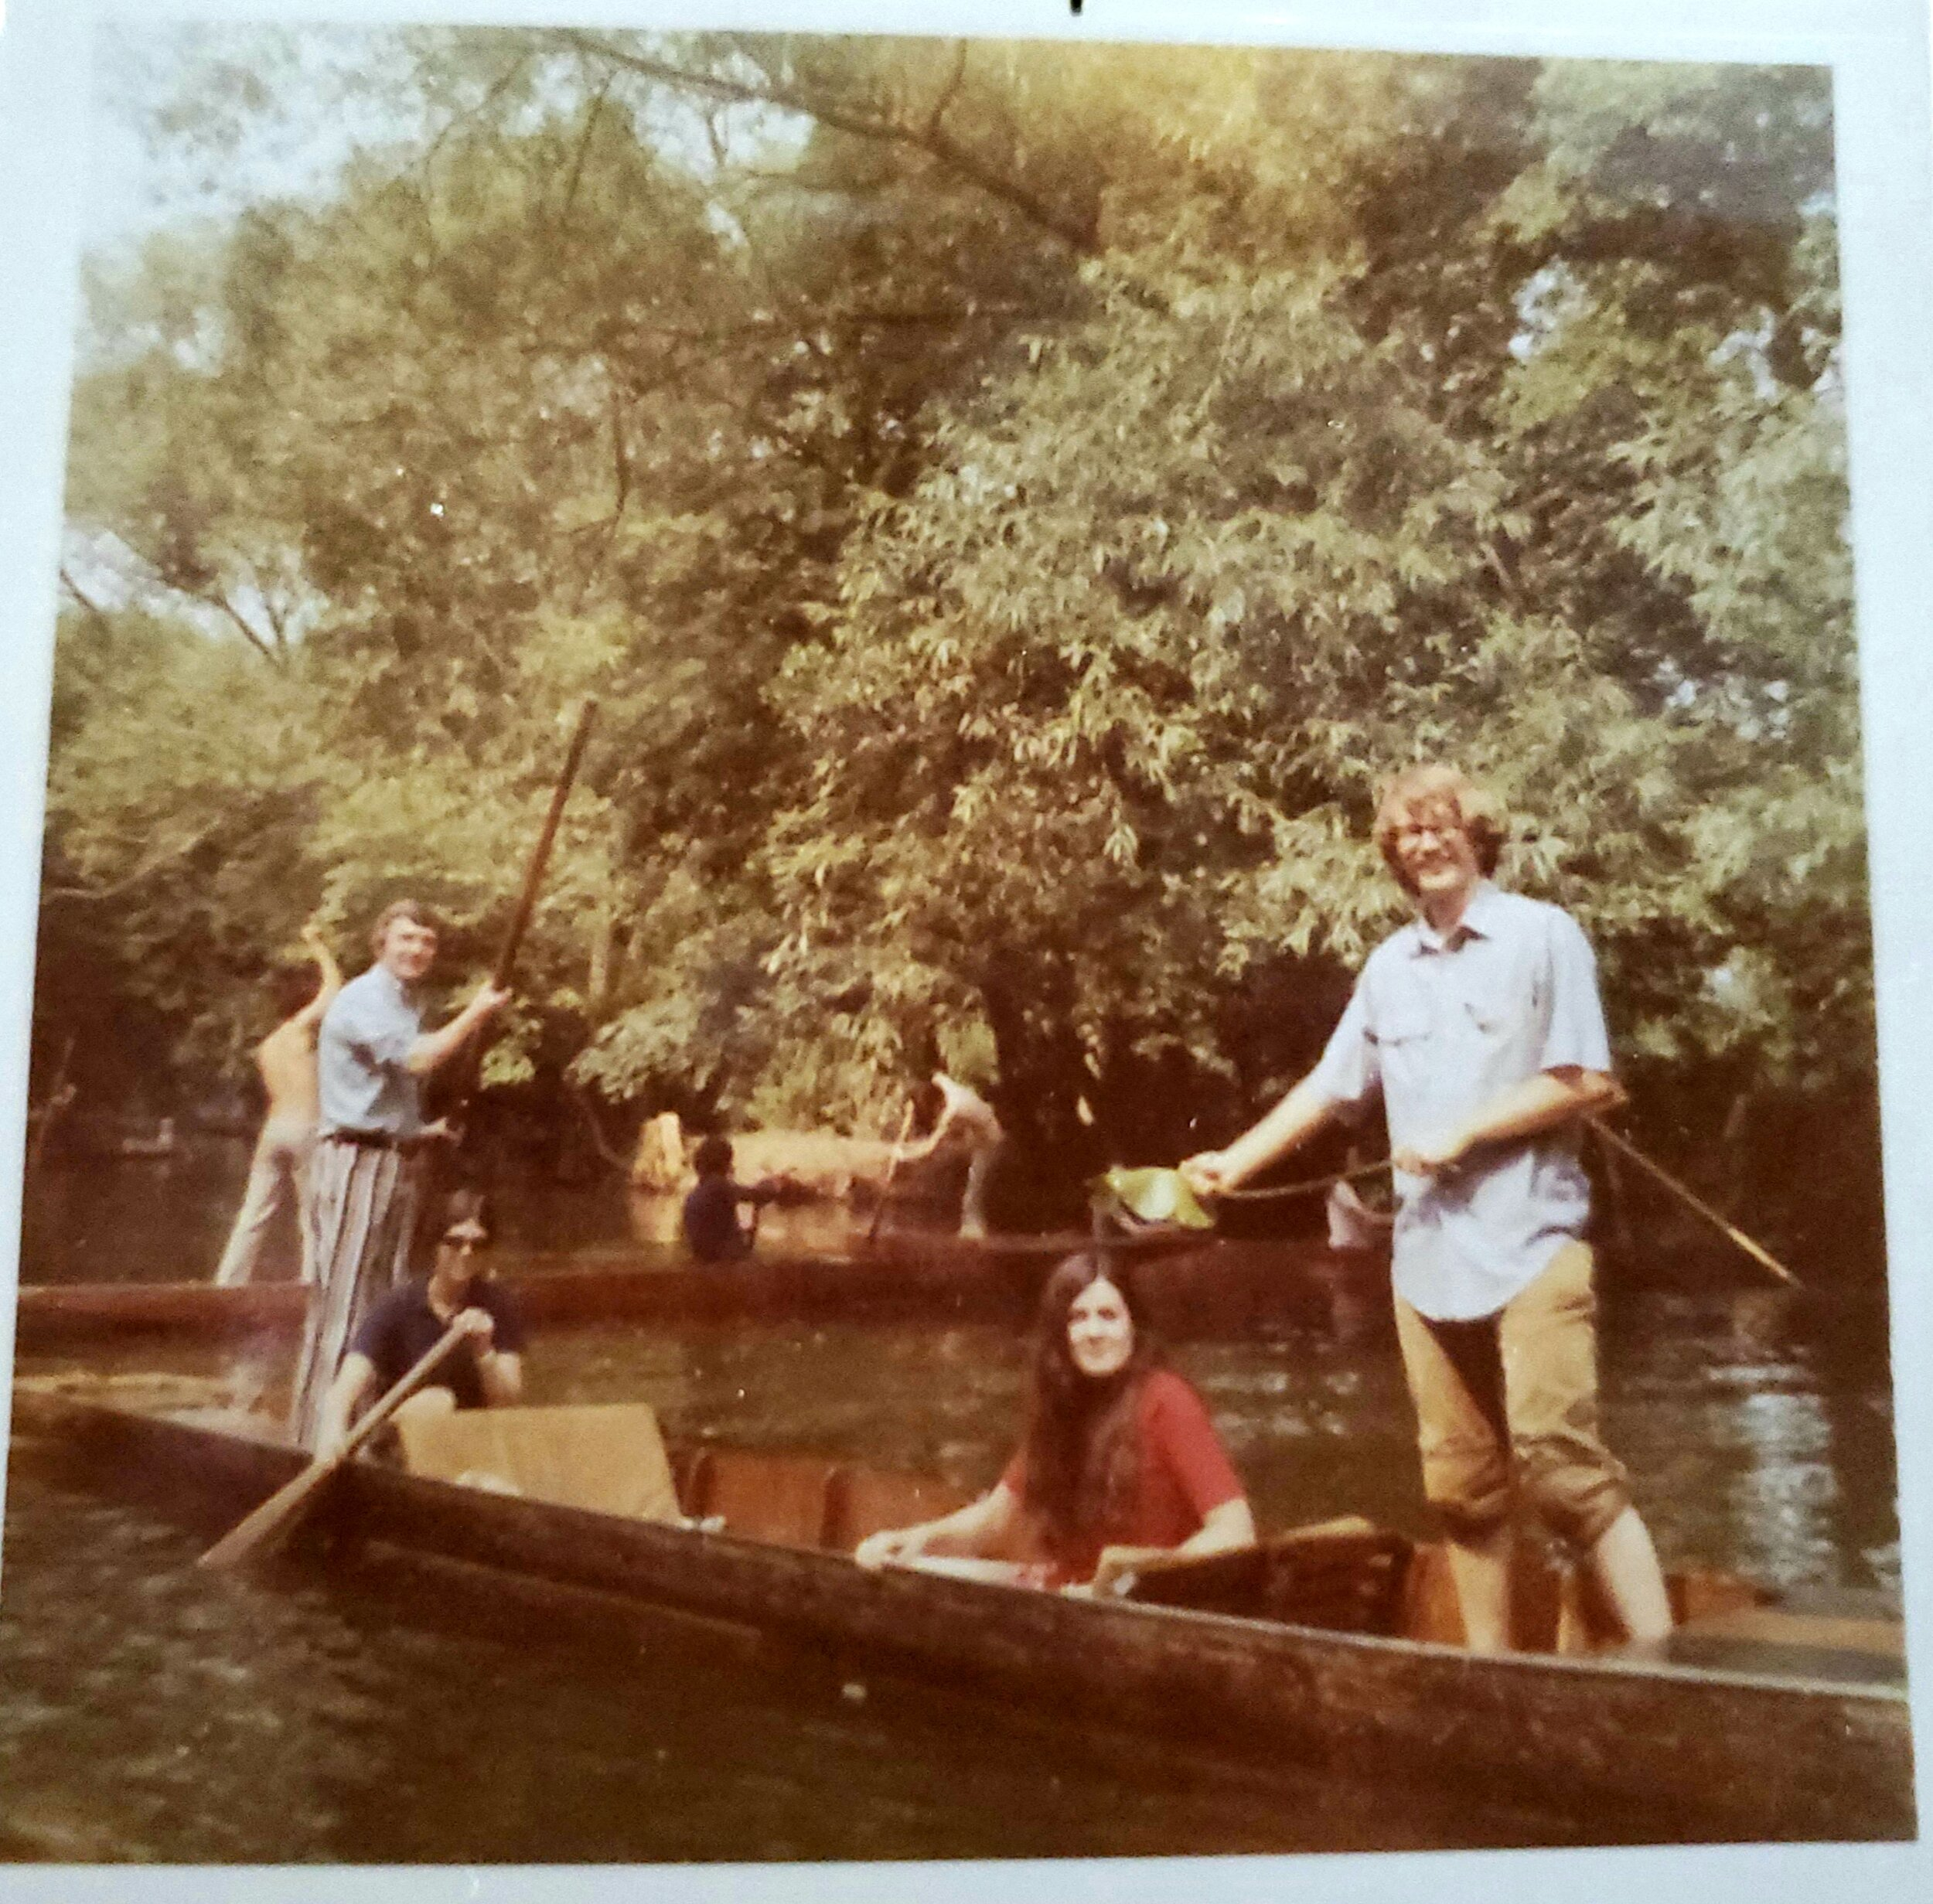 The sophisticated Oxford tradition known as Punting